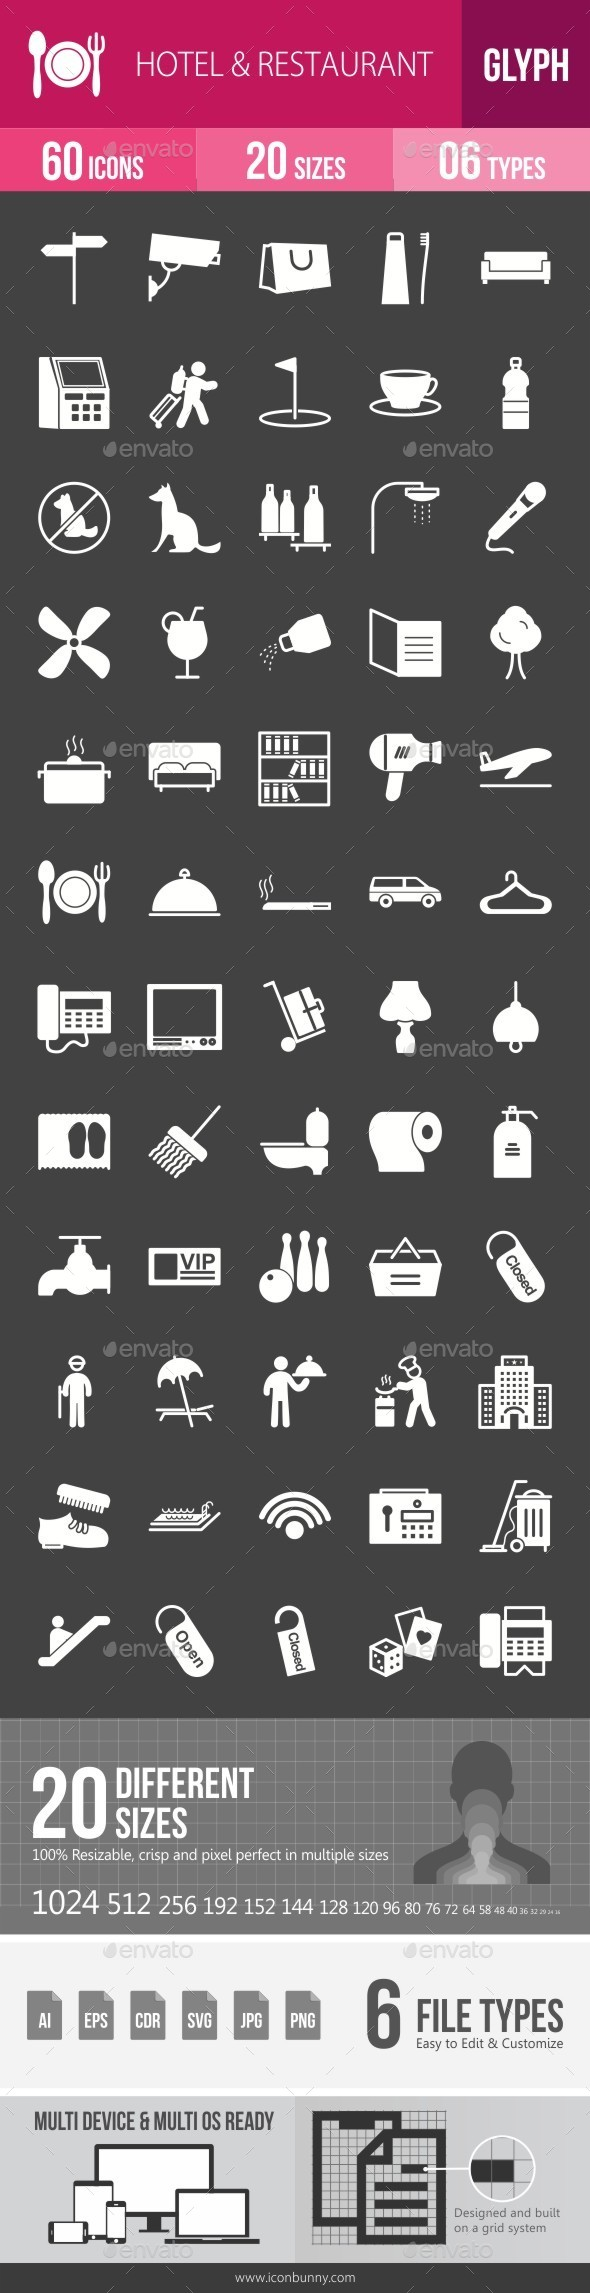 Hotel & Restaurant Glyph Inverted Icons - Icons